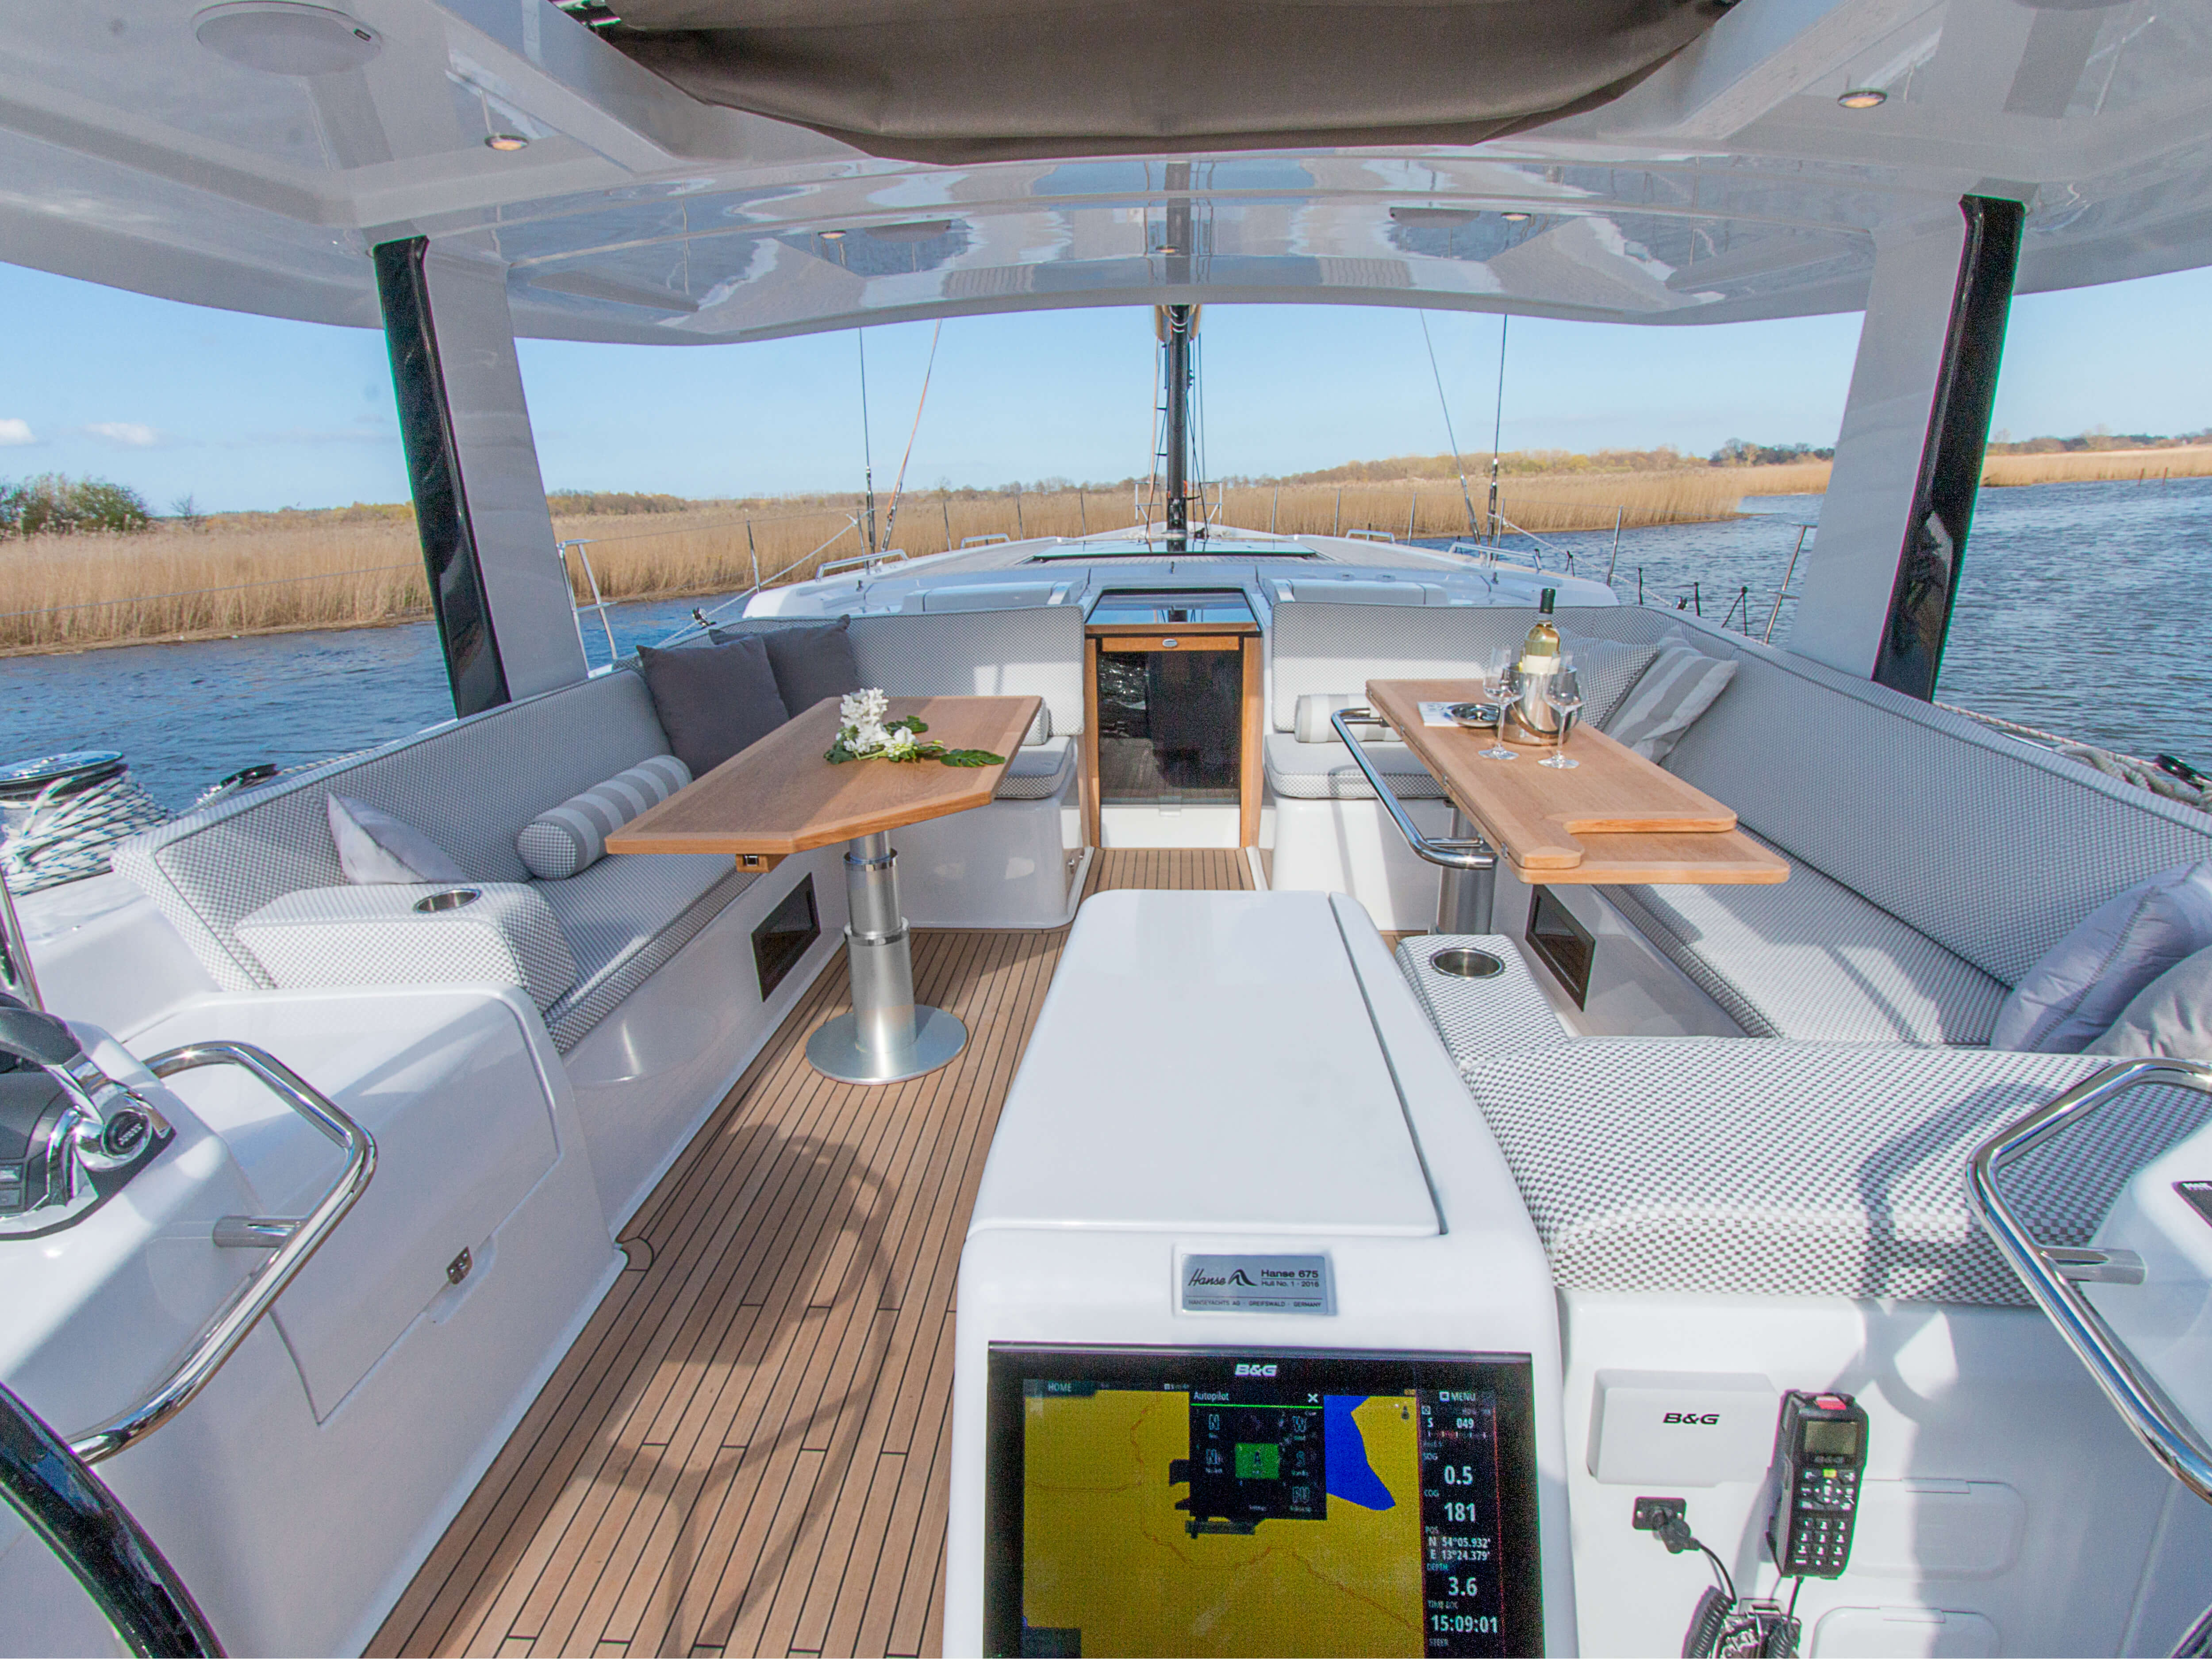 Hanse 675 | cockpit, companion way, teak deck, cockpit table, multi-function display | Hanse